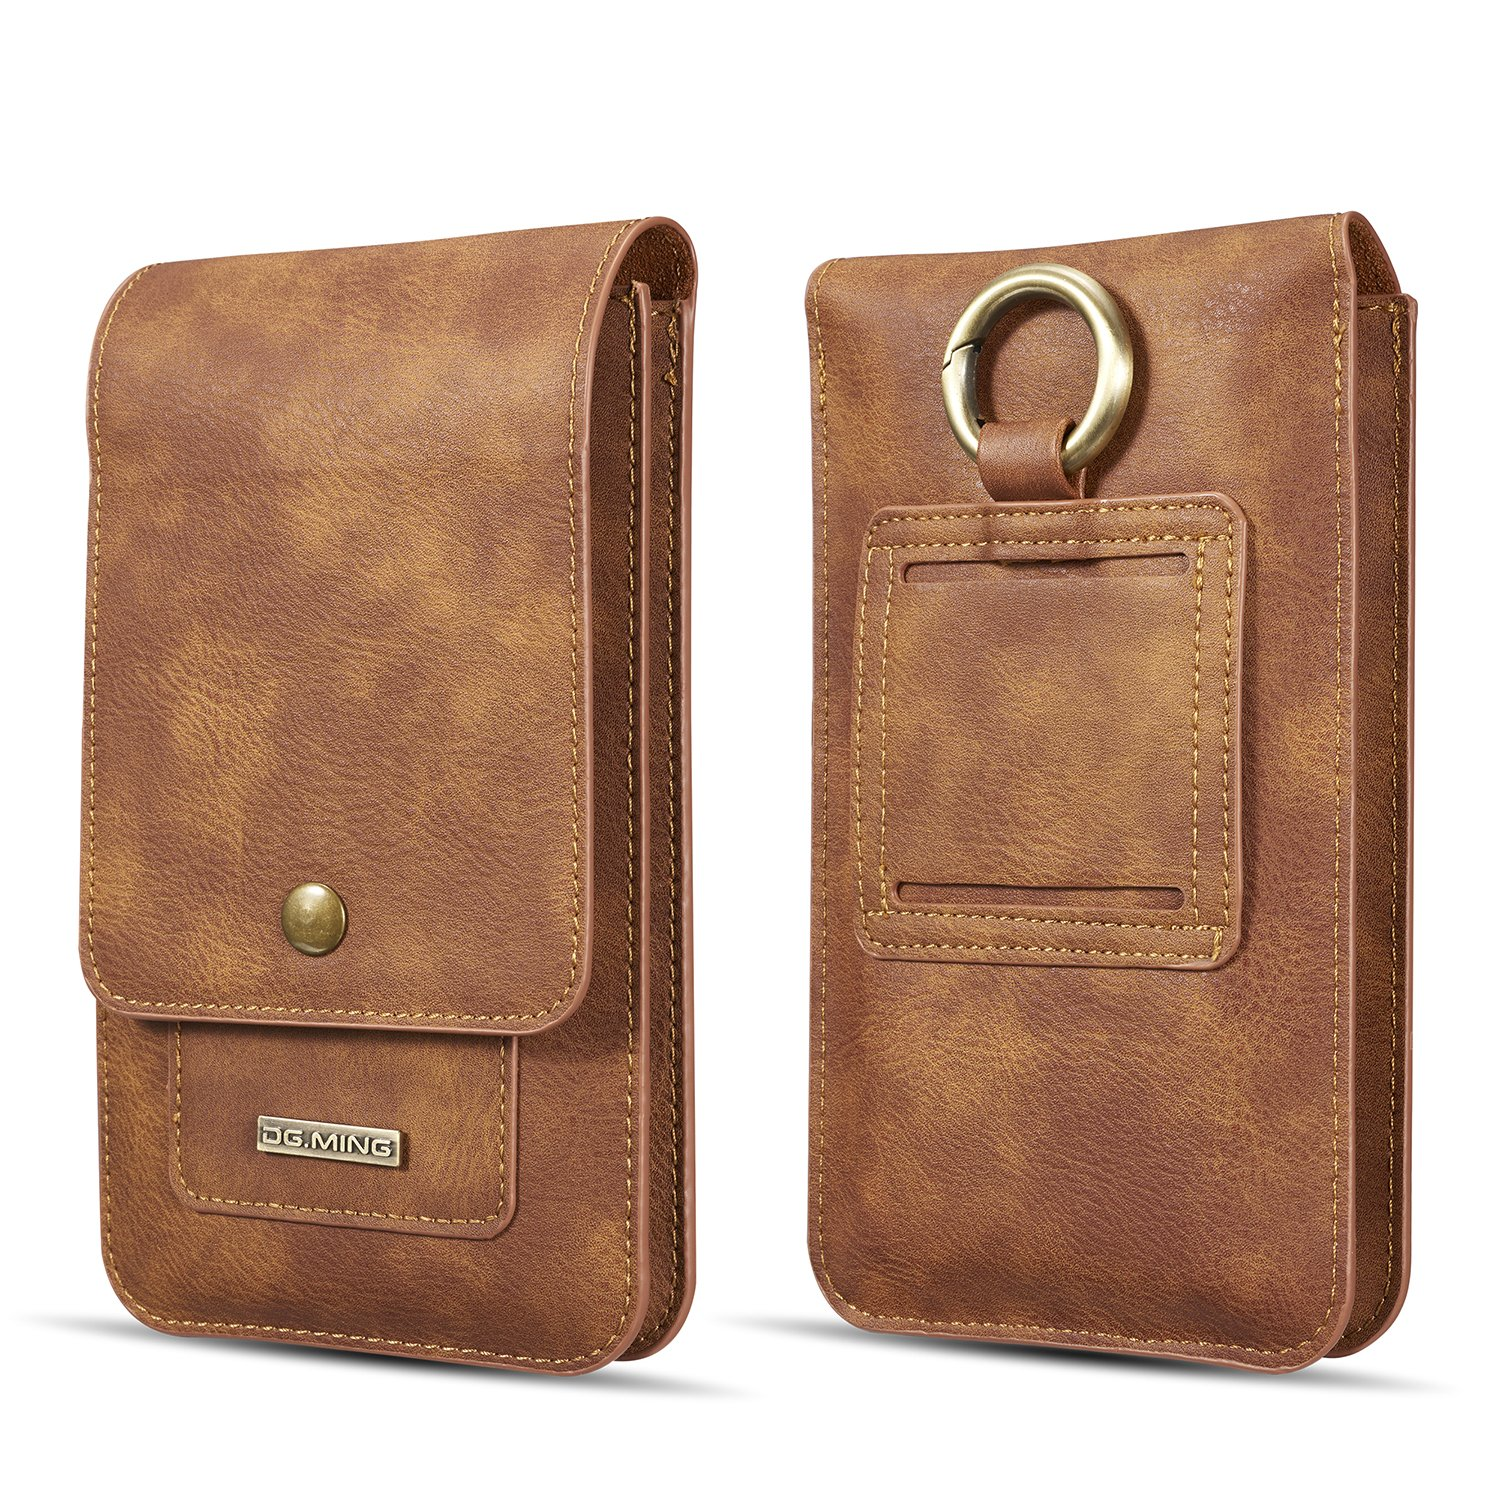 iphone X Holster, DG.MING(TM), Durable, High Grade, Universal Leather Holster Belt Clip Pouch Carrying Case with Card Slot & Double Pockets Design for All Smartphone Below 5.2 Inches (Brown, 5.2in)